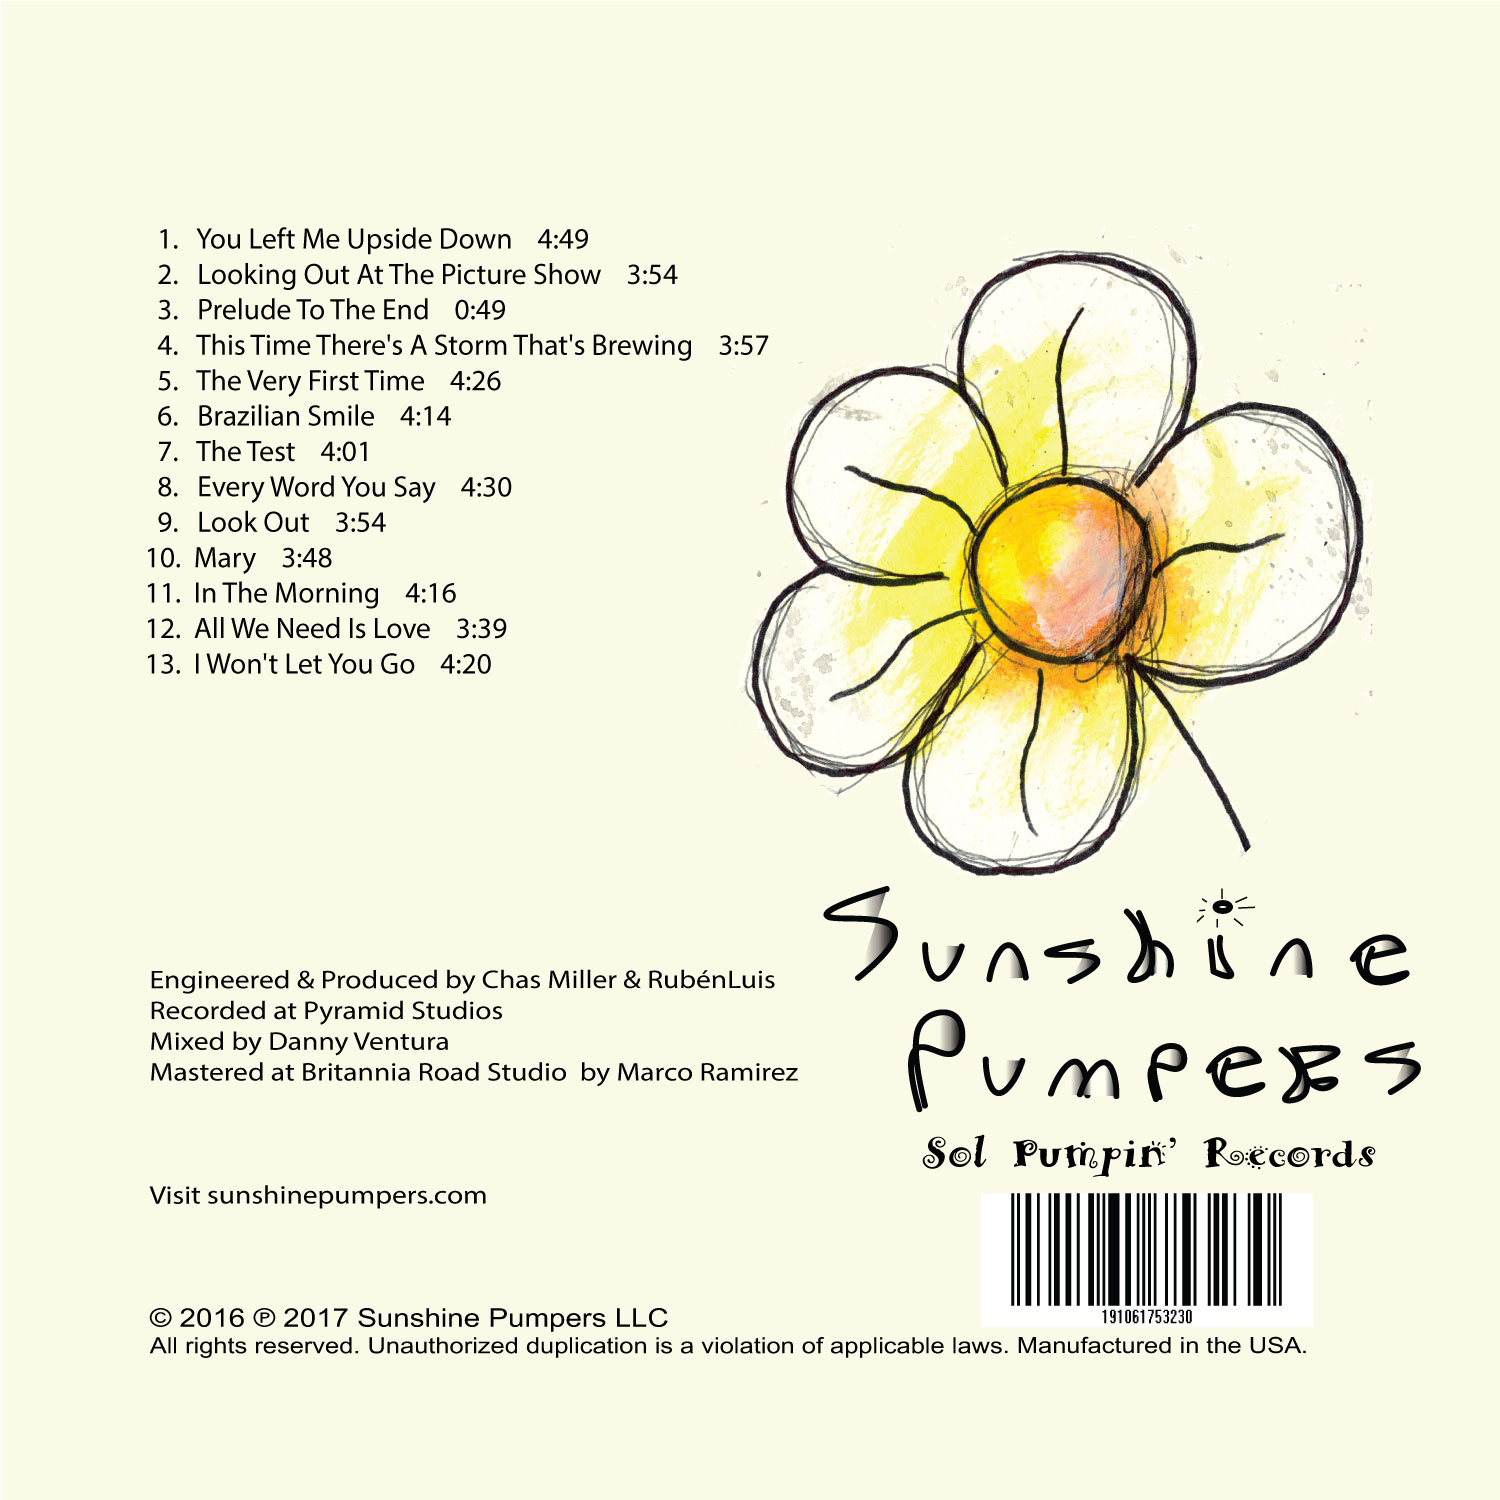 Sunshine_Pumpers_Liner_Notes_Back_High_1500X1500.jpg